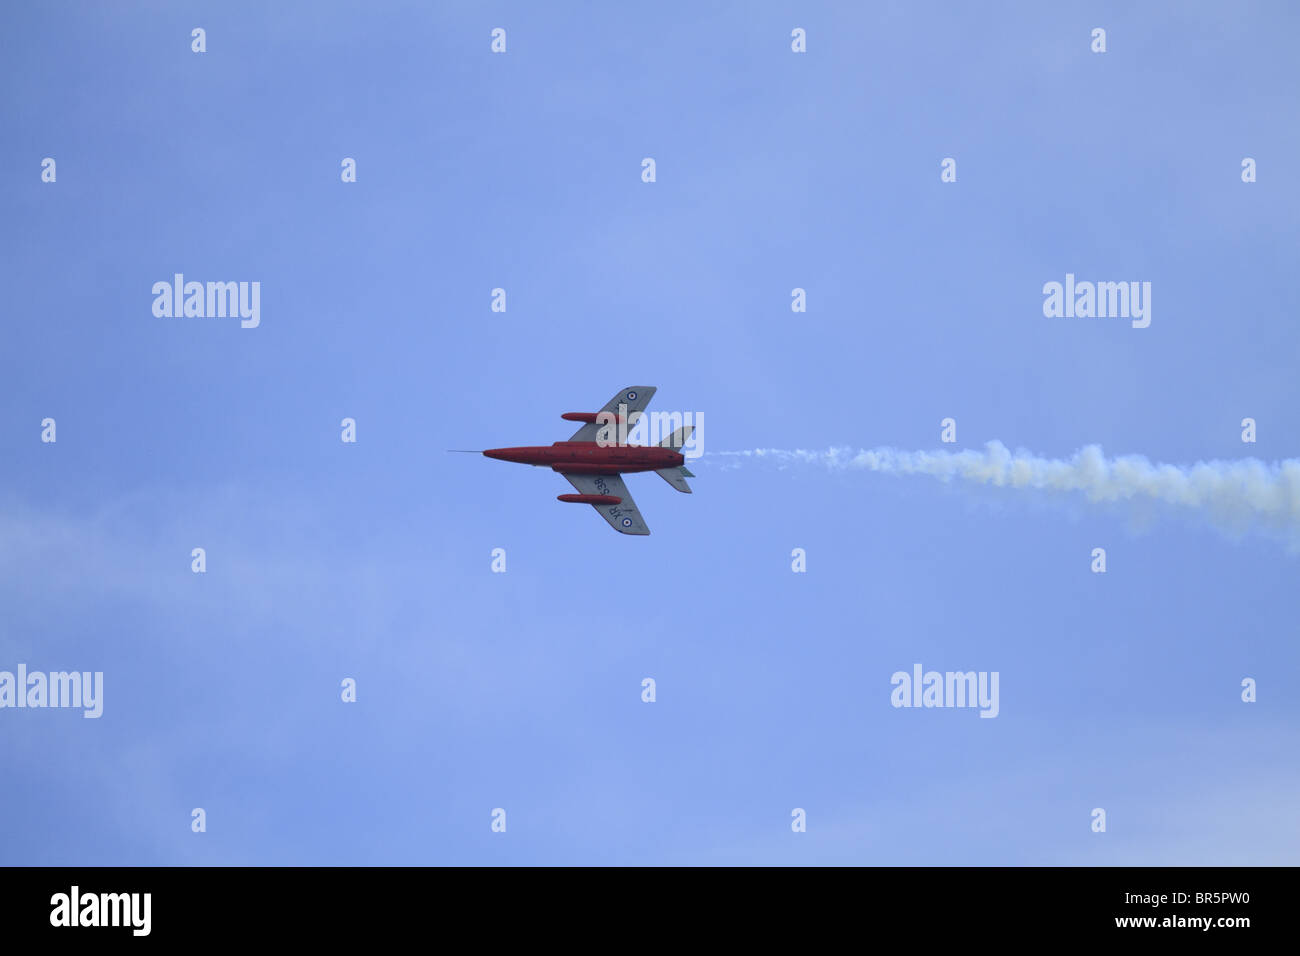 A Folland Gnat displaying at Eastbourne Air Show, East Sussex, England - Stock Image